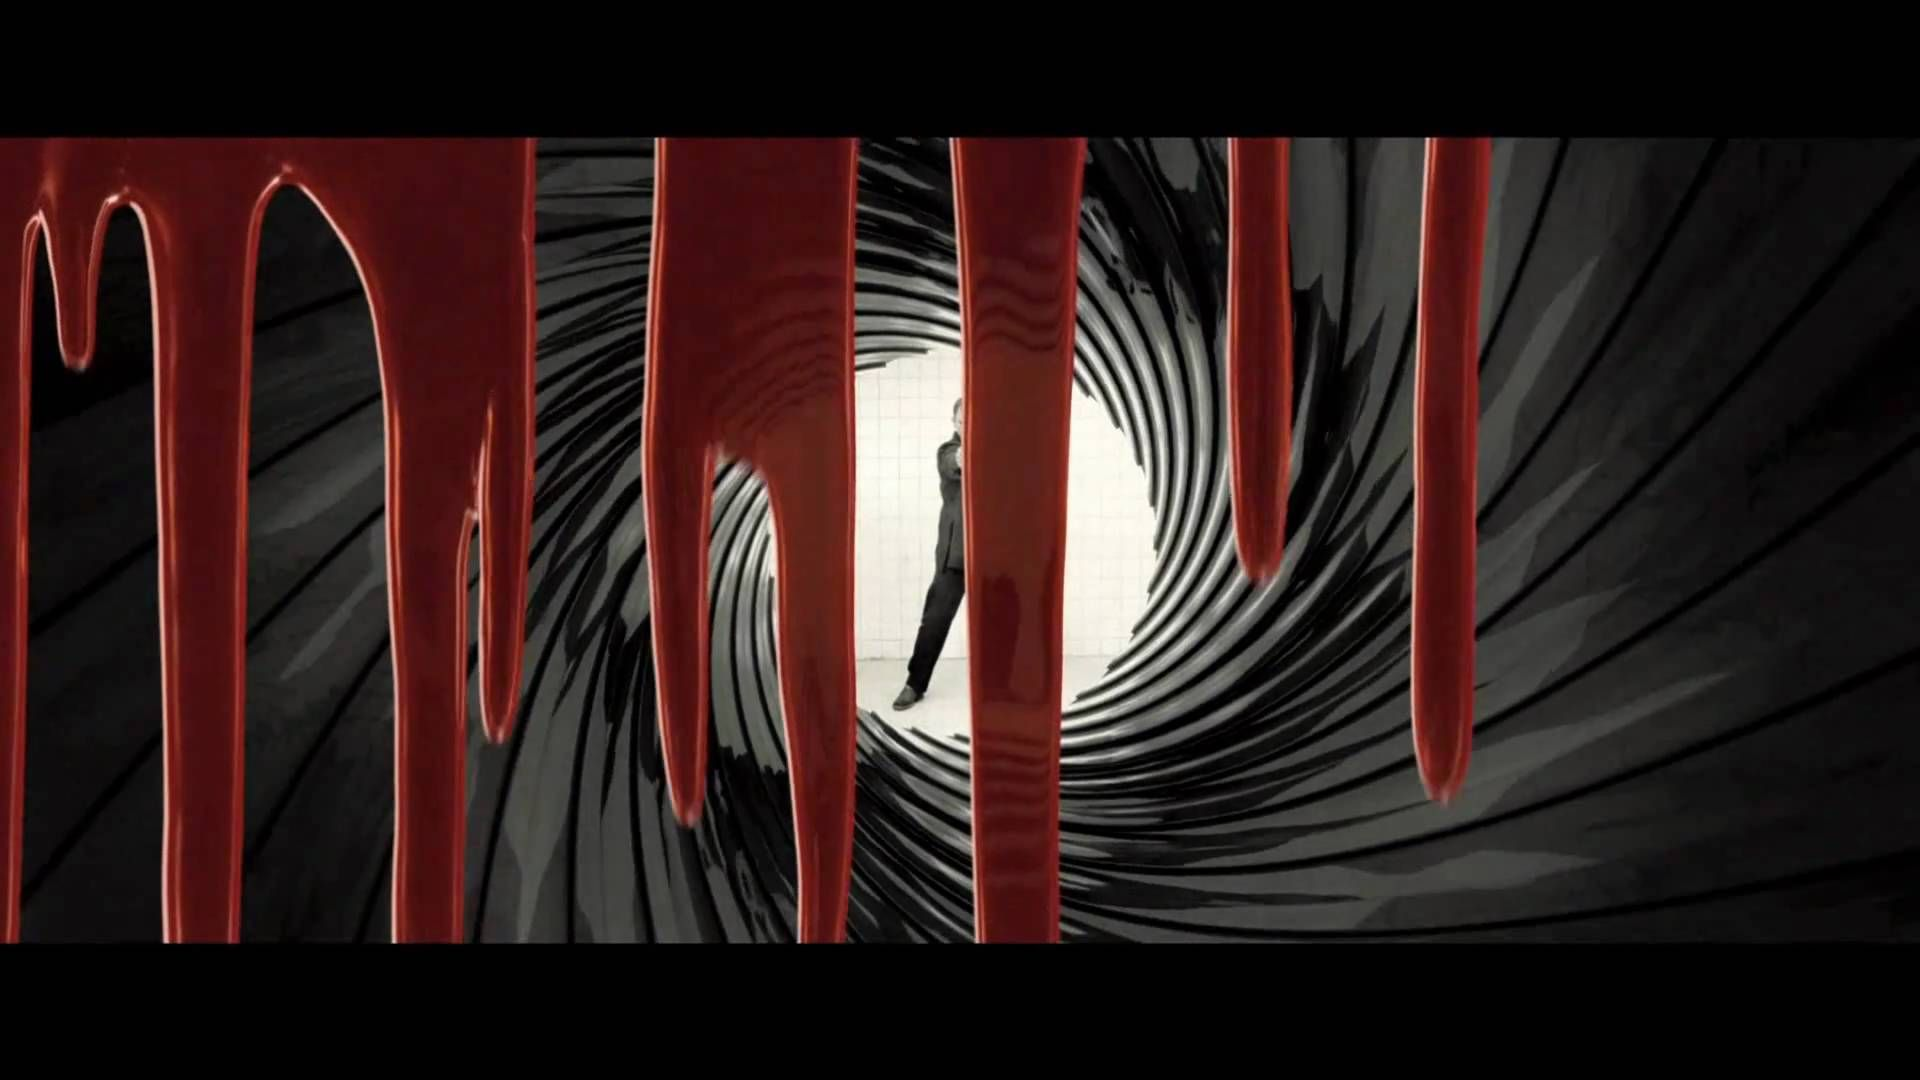 Casino Royale Opening Title Sequence Gunbarrel Title Sequence The Girl With The Dragon Tattoo Casino Royale